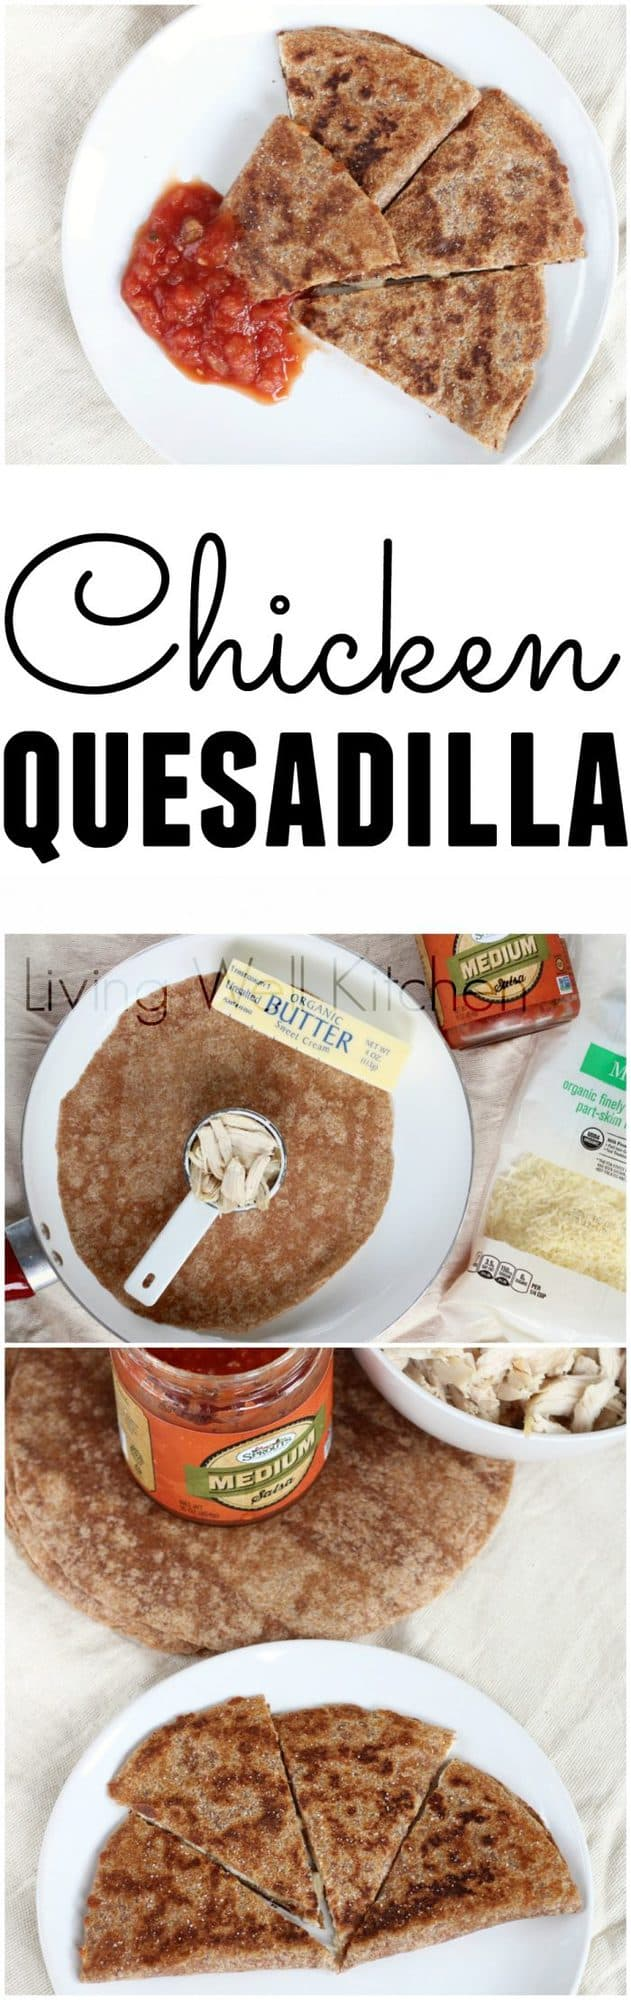 A basic chicken and cheese quesadilla is the answer to your hunger for filling comfort food that doesn't have to be unhealthy. This quesadilla recipe is easy to customize to fit your taste preferences and is a filling & delicious snack or can even be lunch or dinner when paired with fruits and veggies.